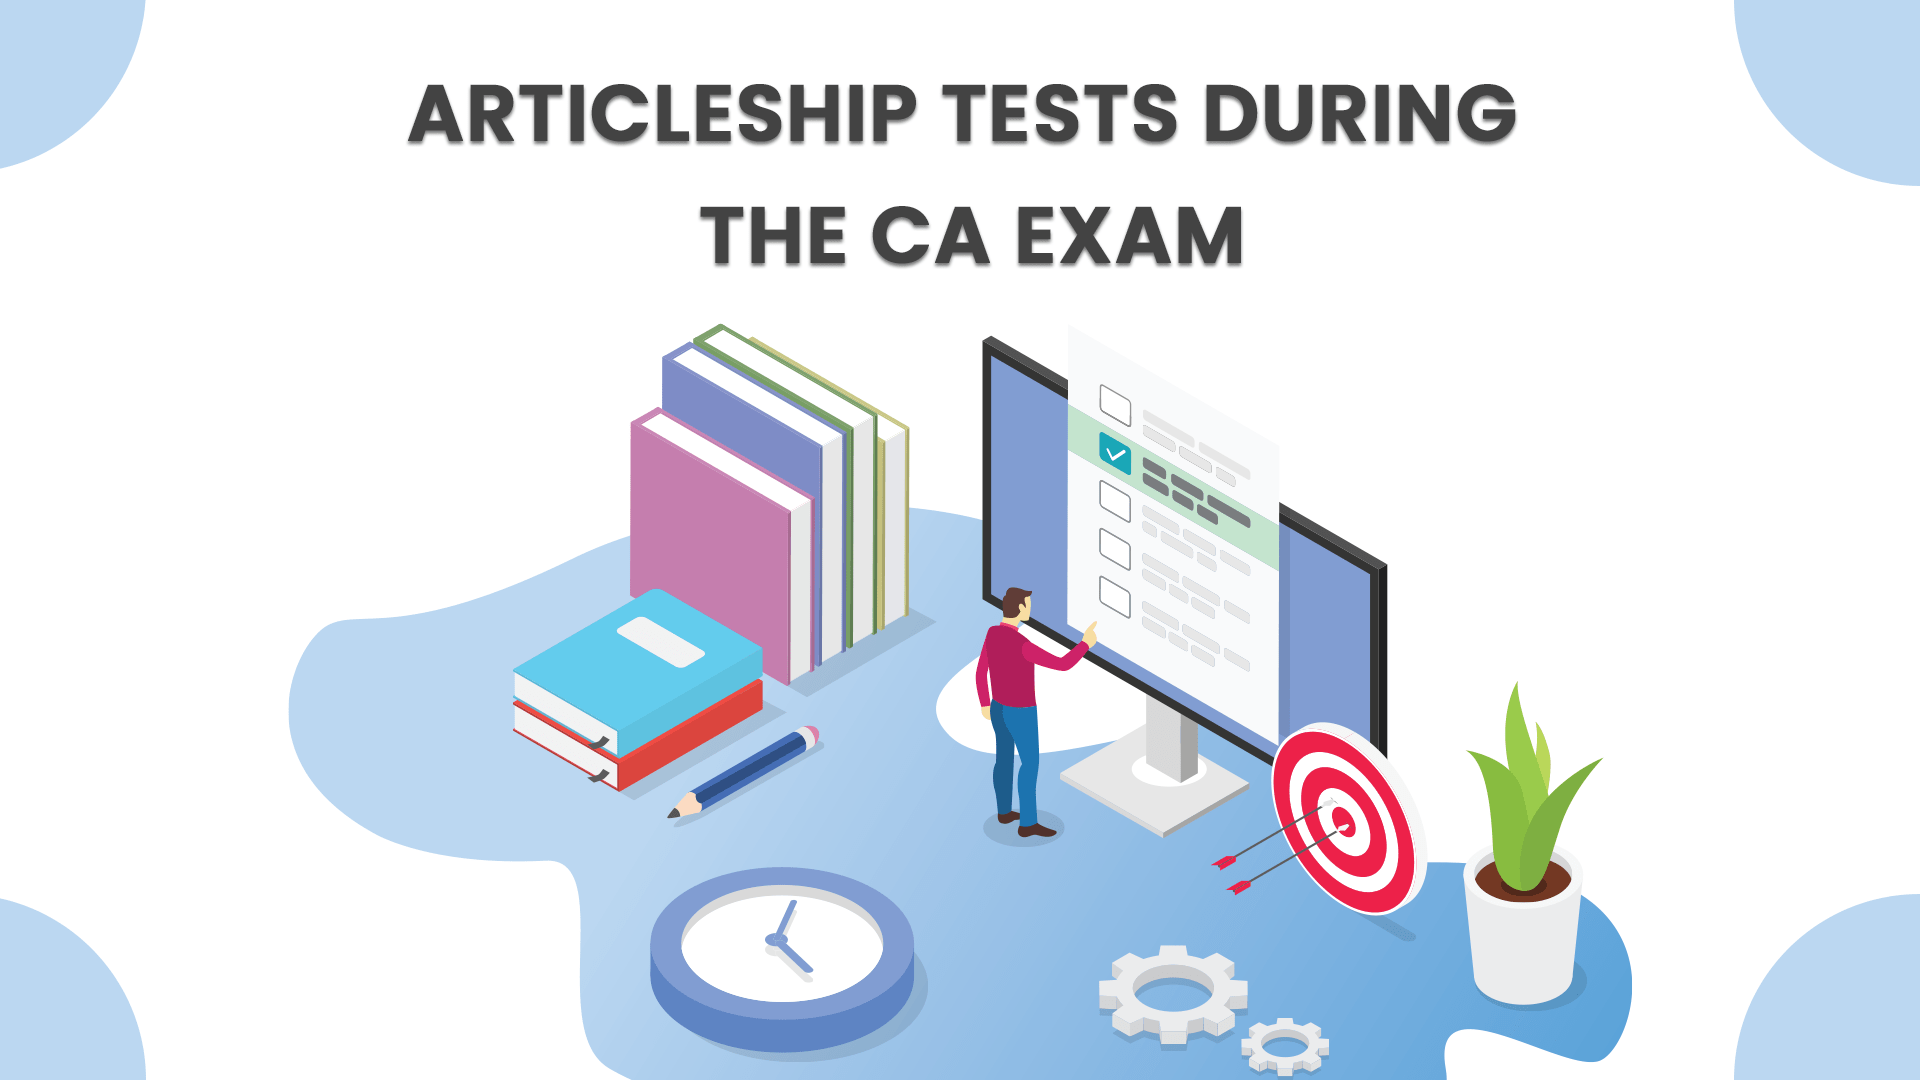 Articleship Tests During the CA Exam